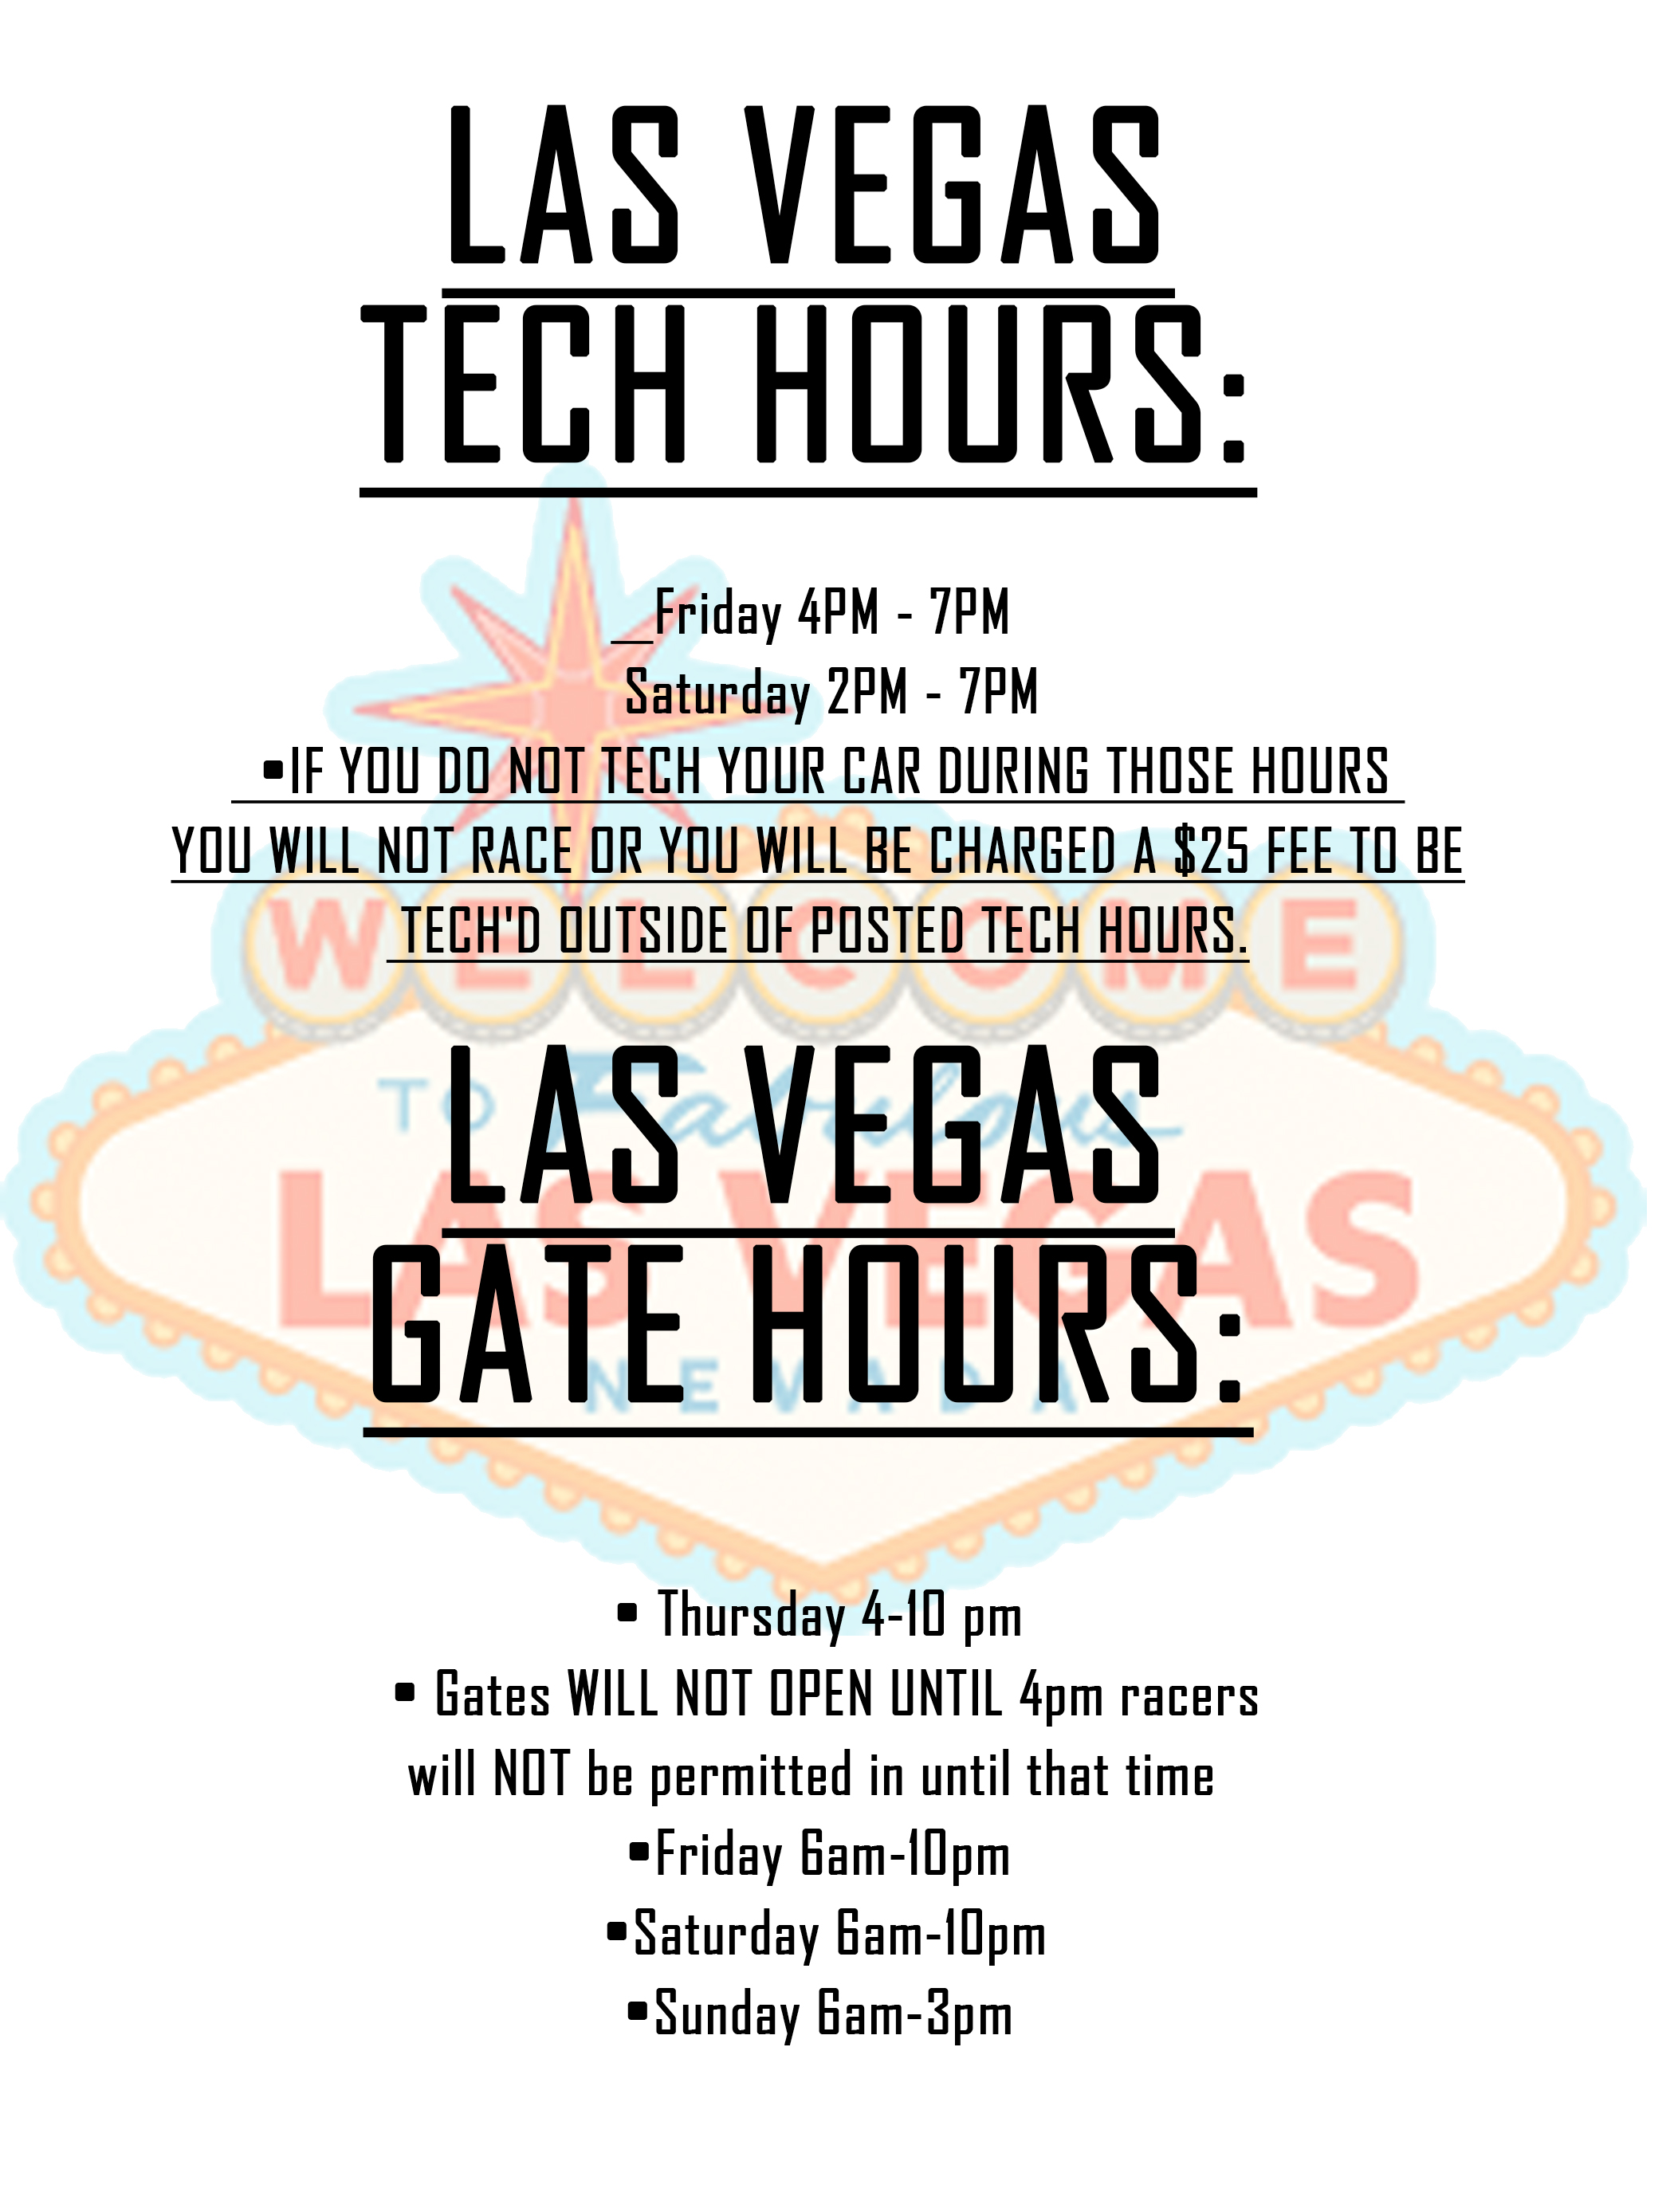 LAS-VEGAS-2019-GATE-AND-TECH-HOURS